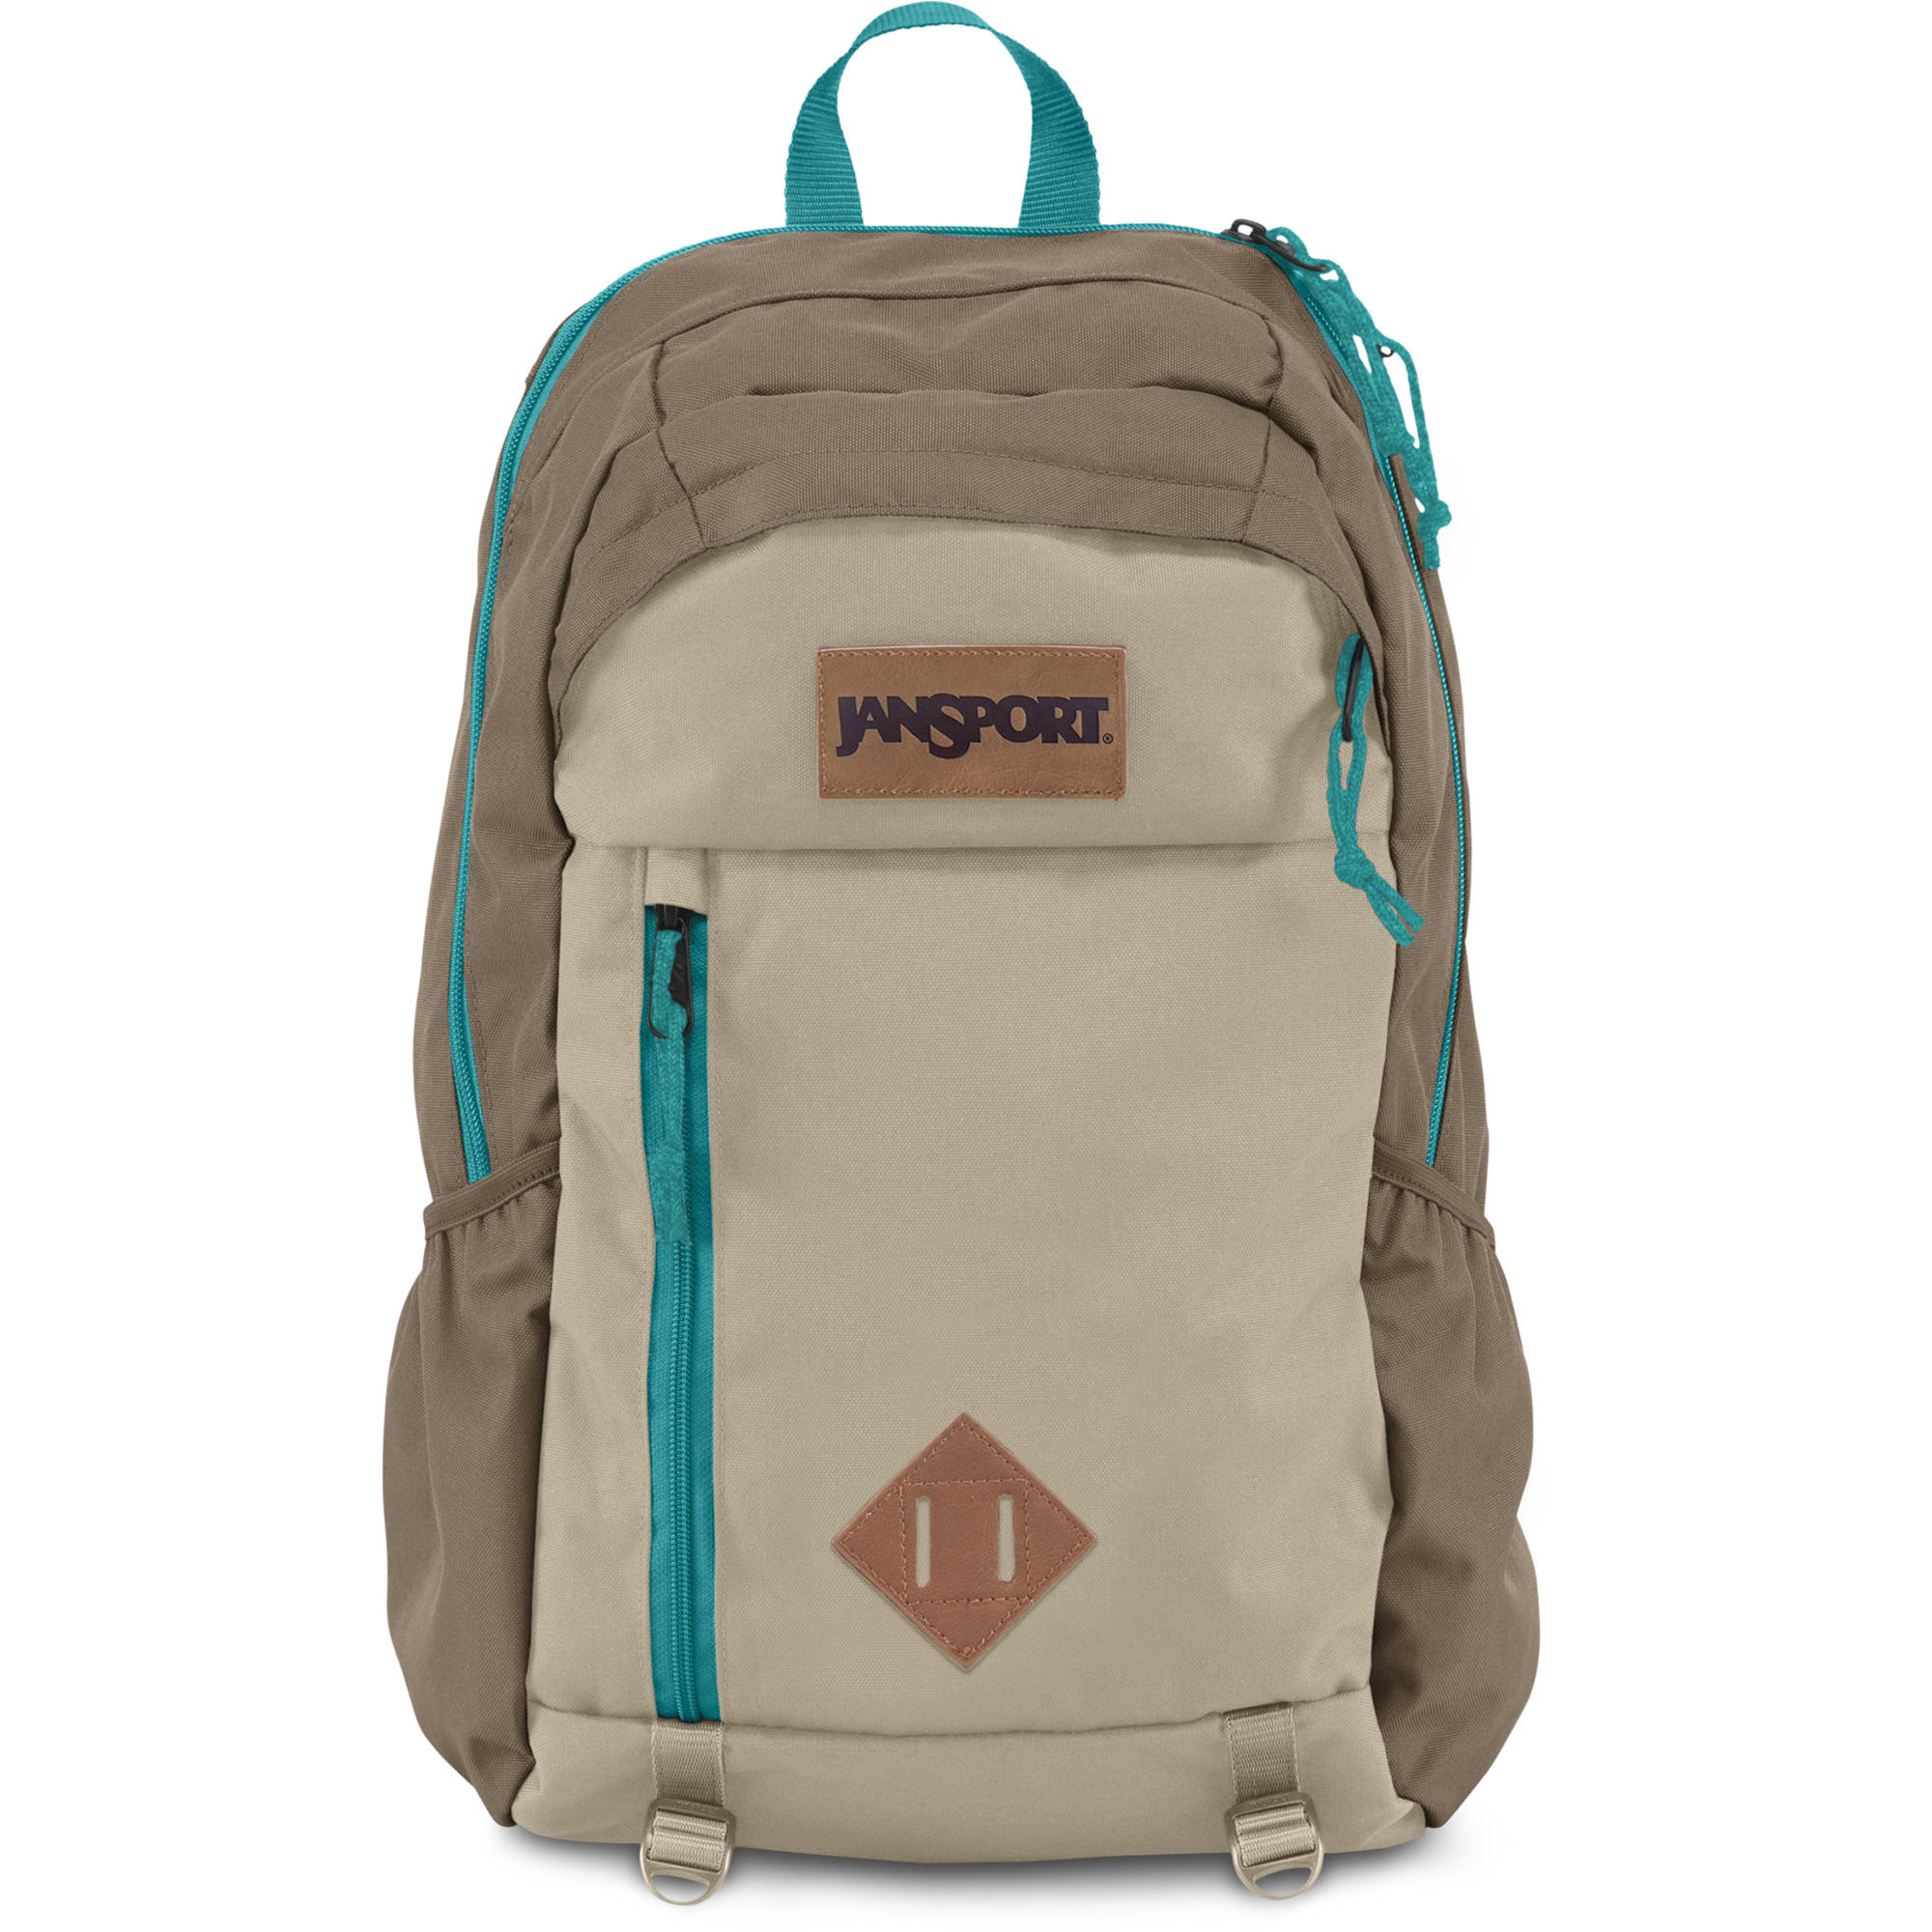 How Much Are Jansport Backpacks 4C1wteD3